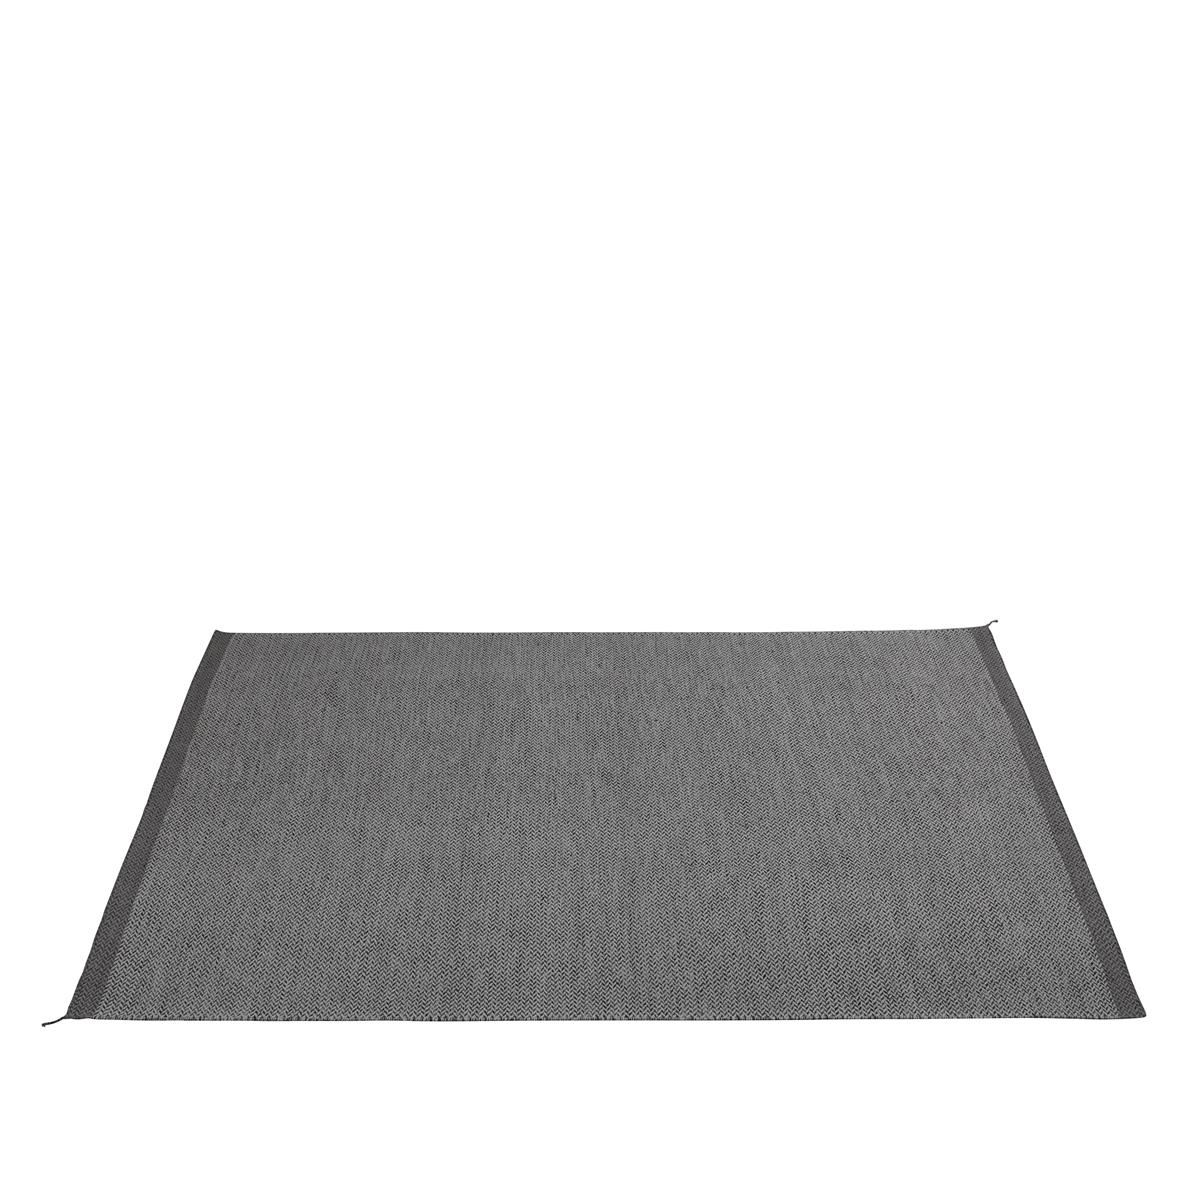 Ply Rug i 200 X 300 cm, Dark Grey